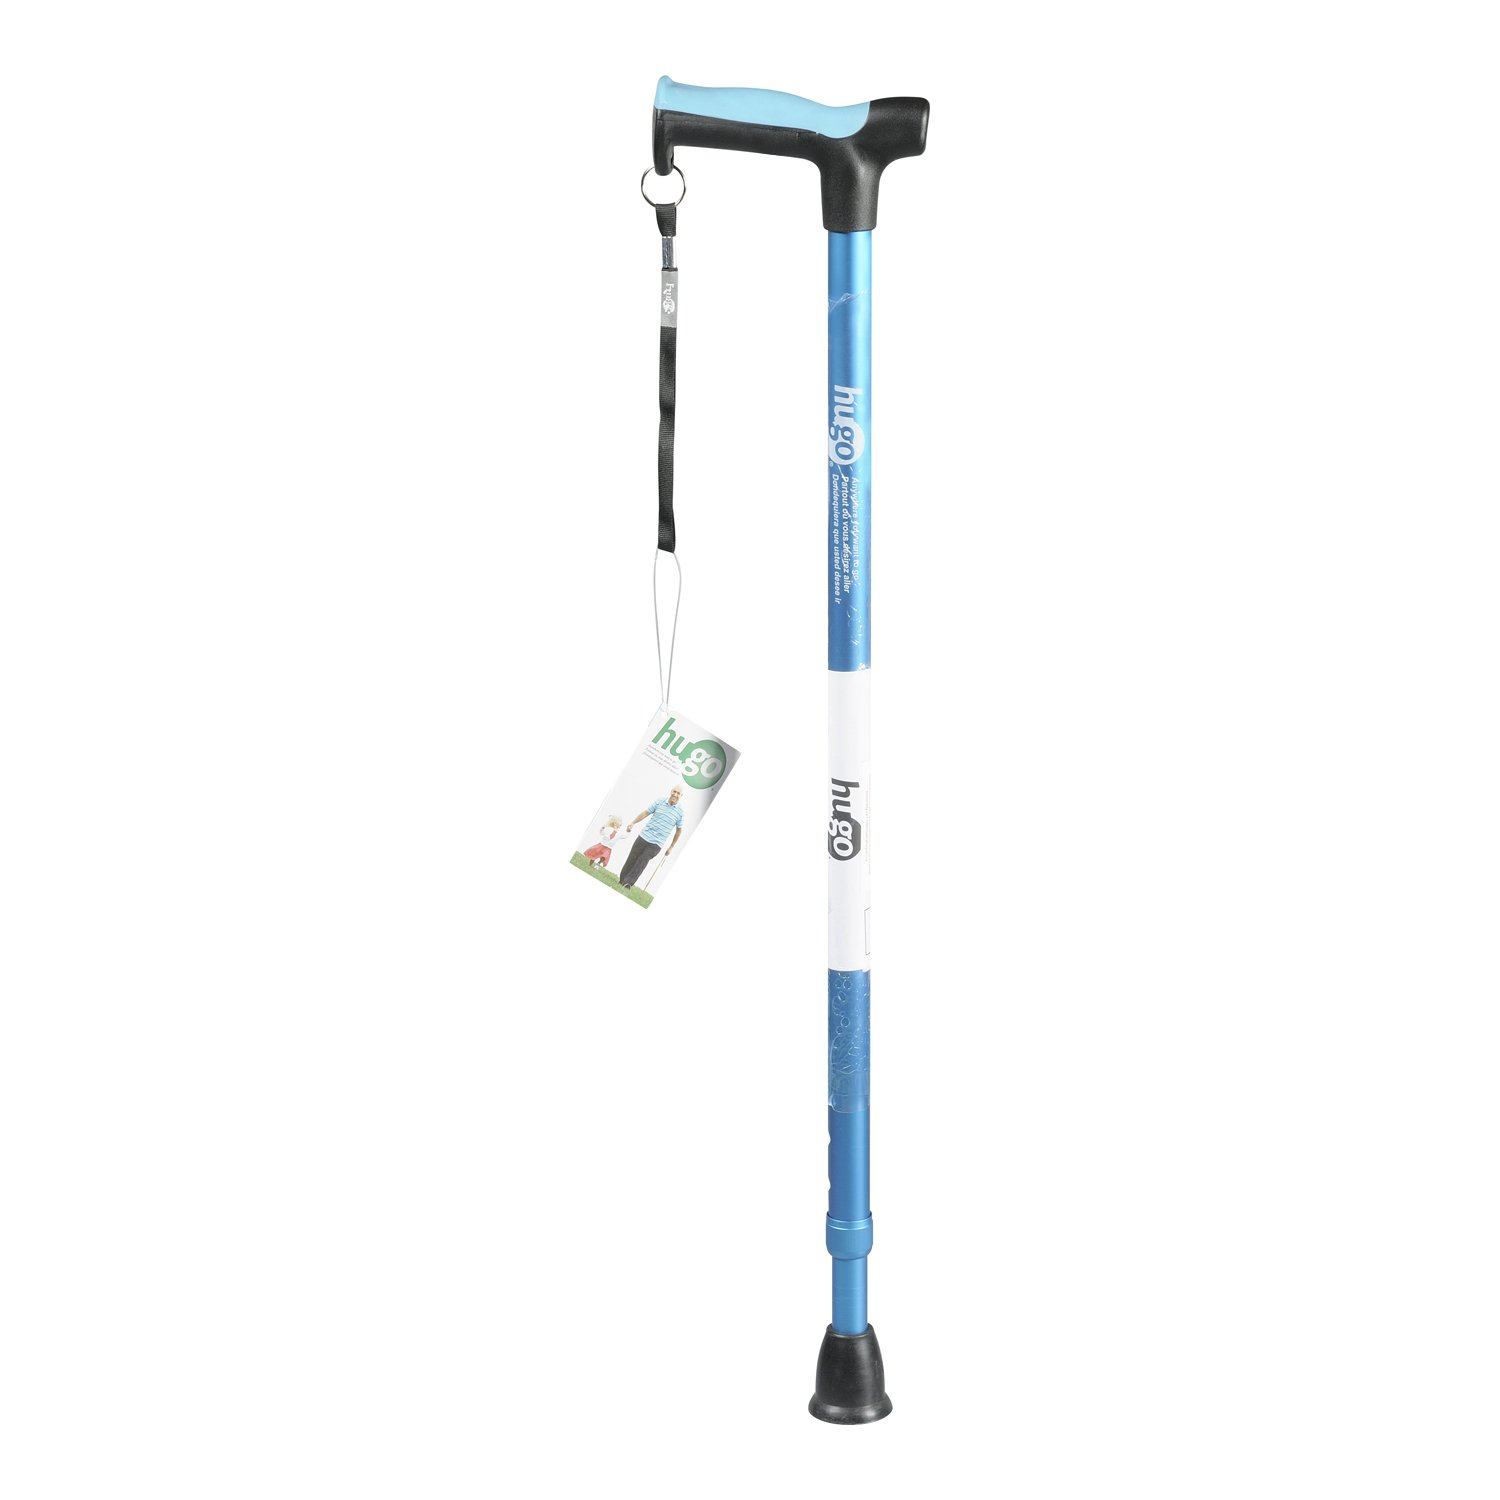 Hugo Mobility Adjustable Derby Handle Cane with Reflective Strap, Aquamarine